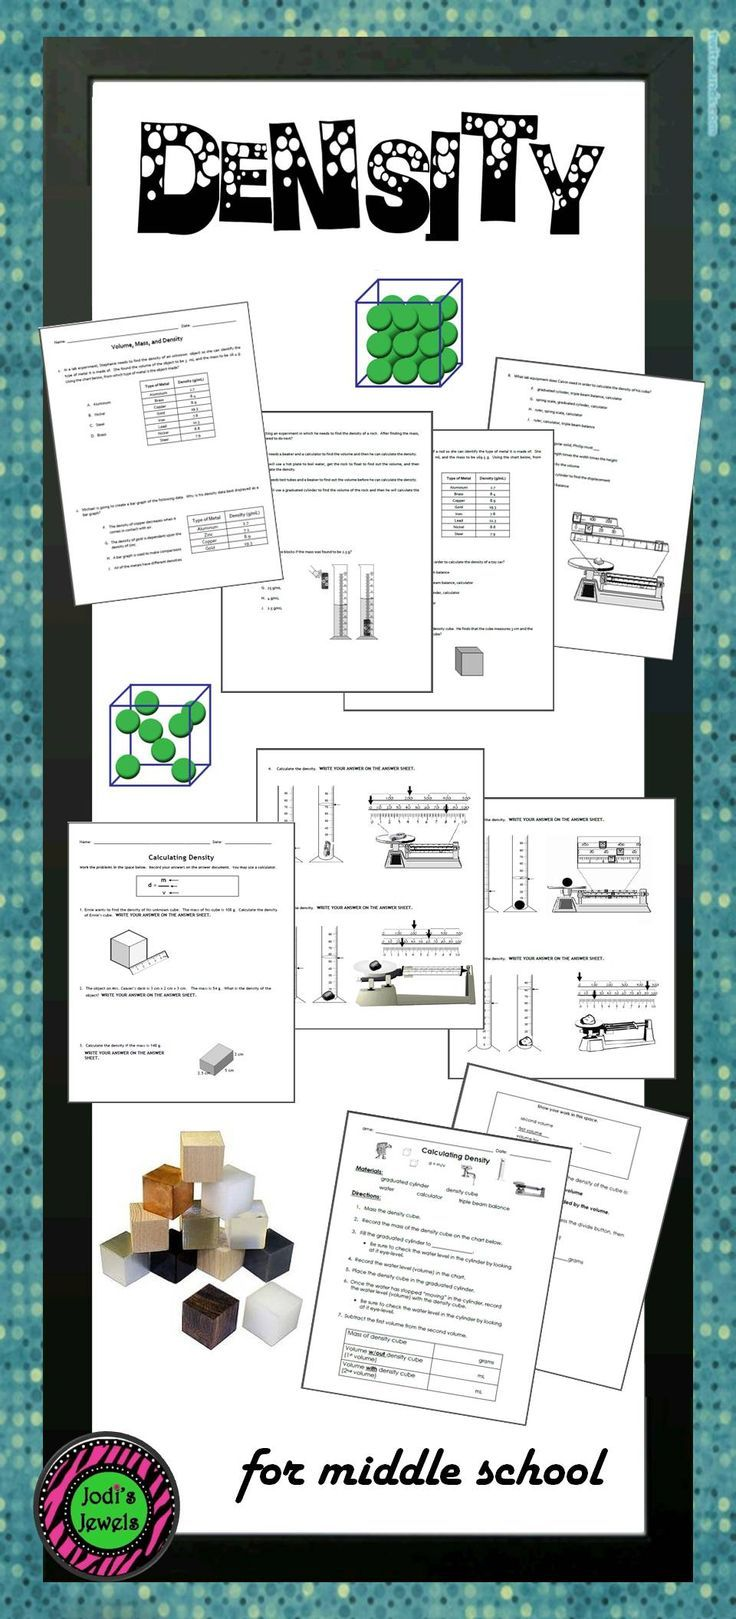 medium resolution of Middle School density worksheets for grades 5 - 7. Lab sheets and worksheets.  Visit Jodi's Jewels today…   Density worksheet